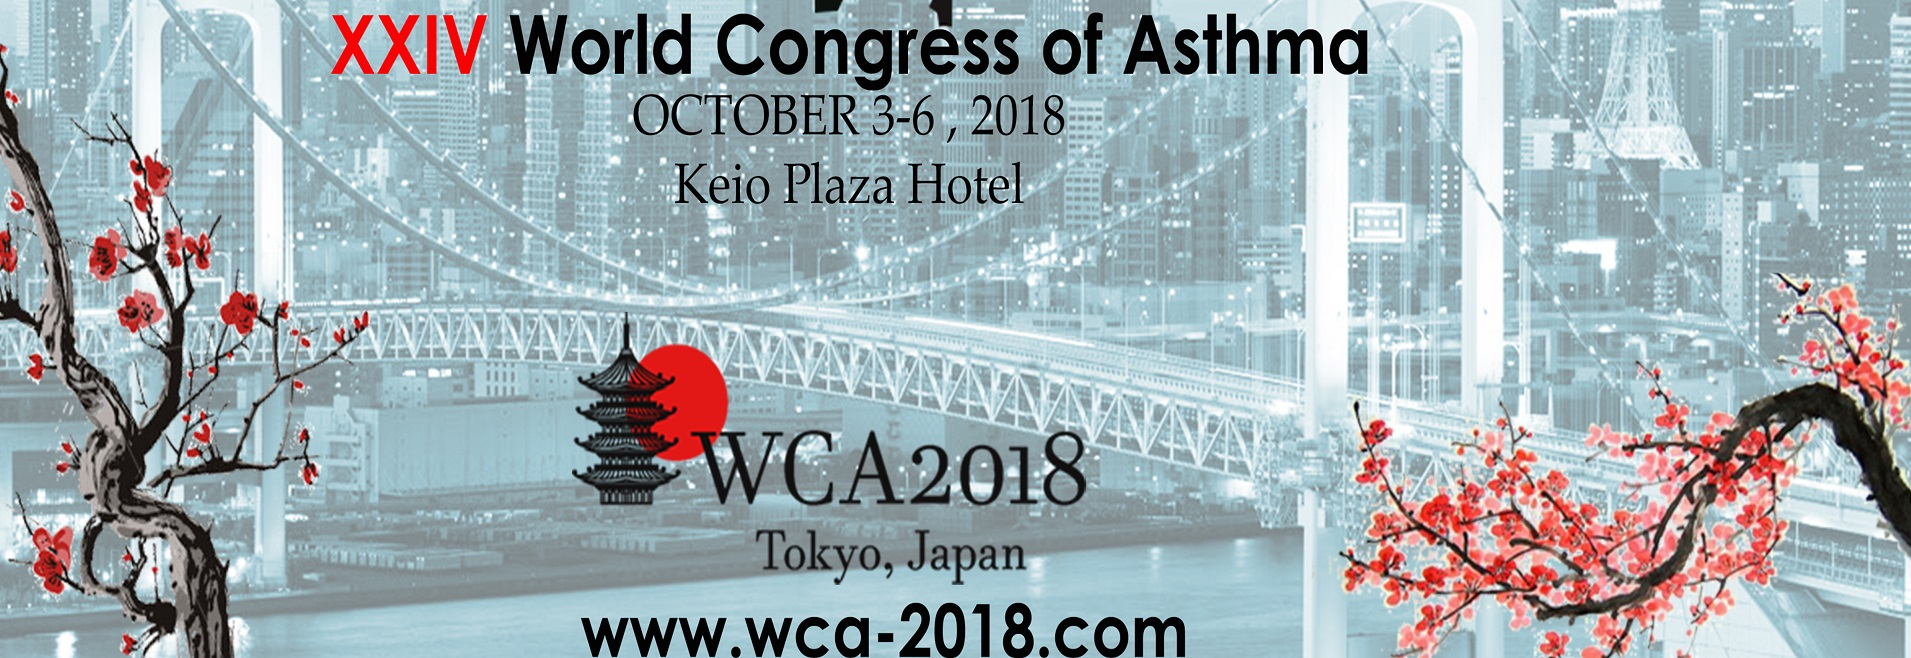 world-congress-of-asthma-2018